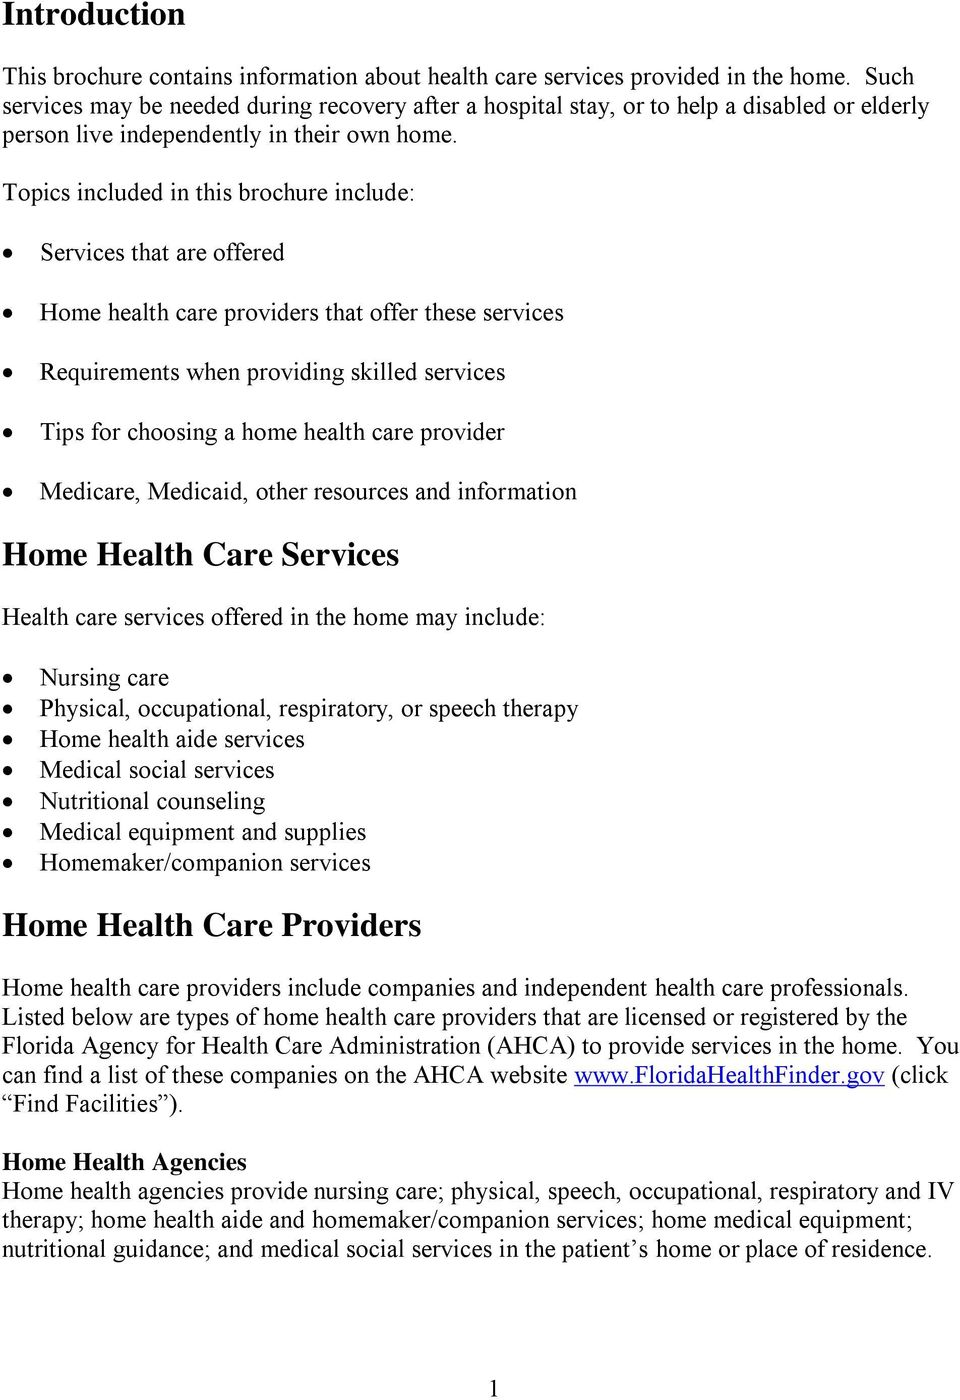 Topics included in this brochure include: Services that are offered Home health care providers that offer these services Requirements when providing skilled services Tips for choosing a home health